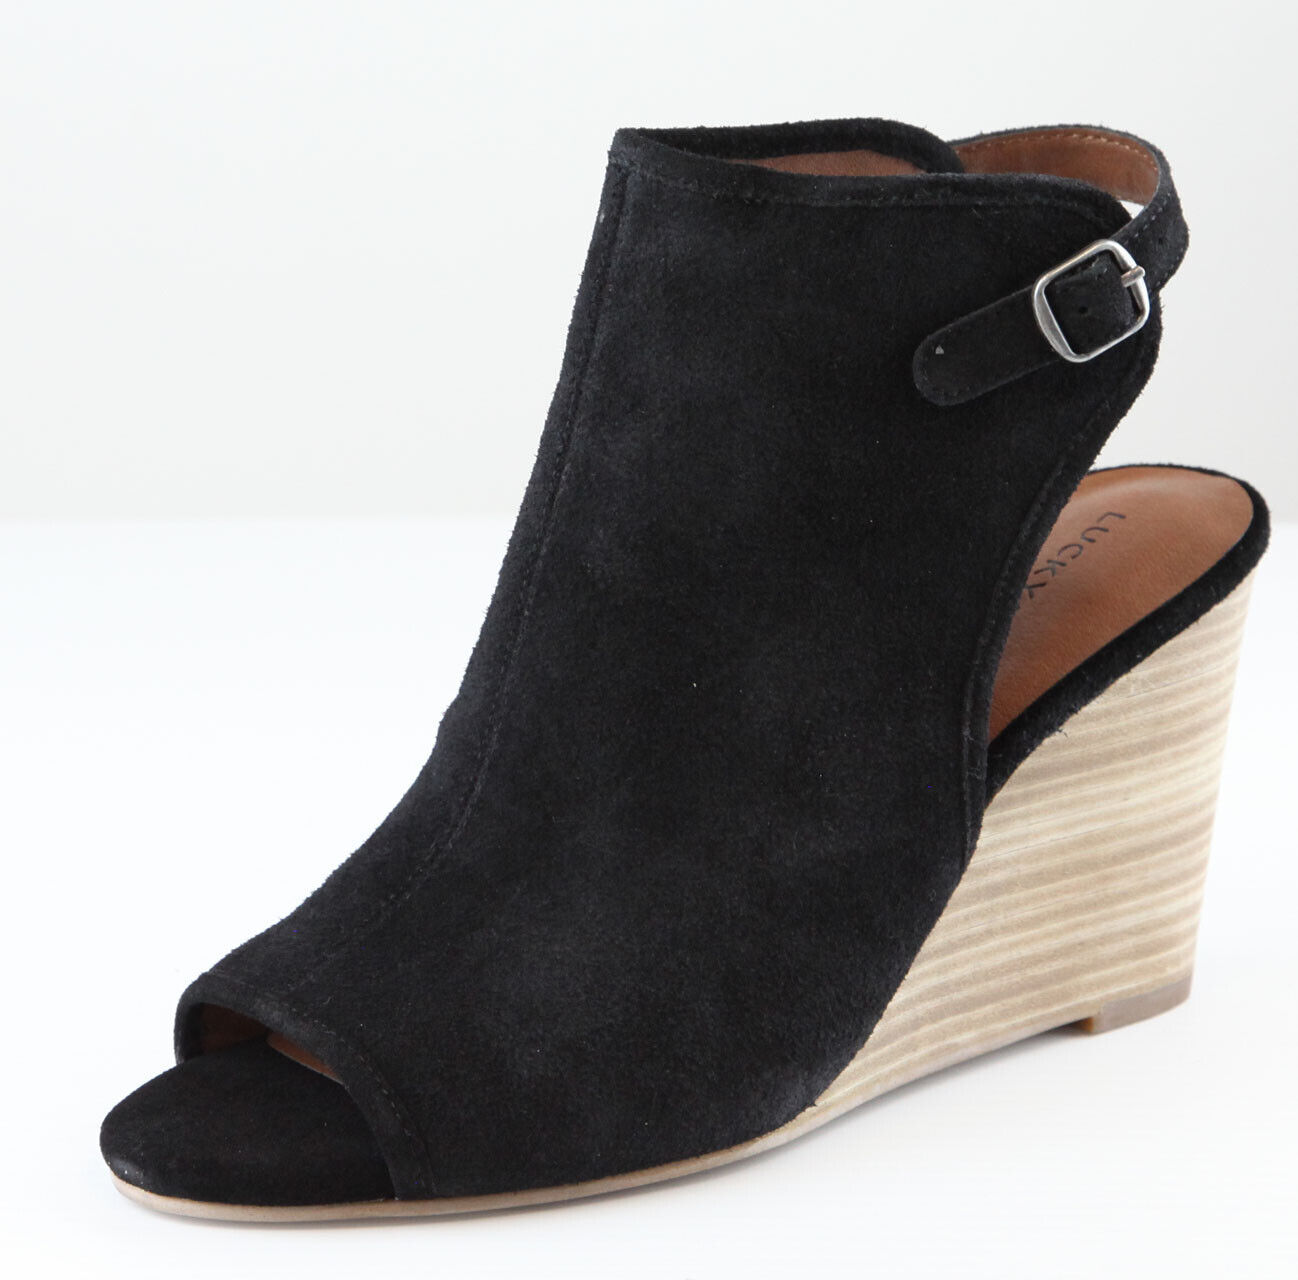 Lucky Brand Womens Black Risza Suede Leather Ankle Sandals Shoes Ret $120 New